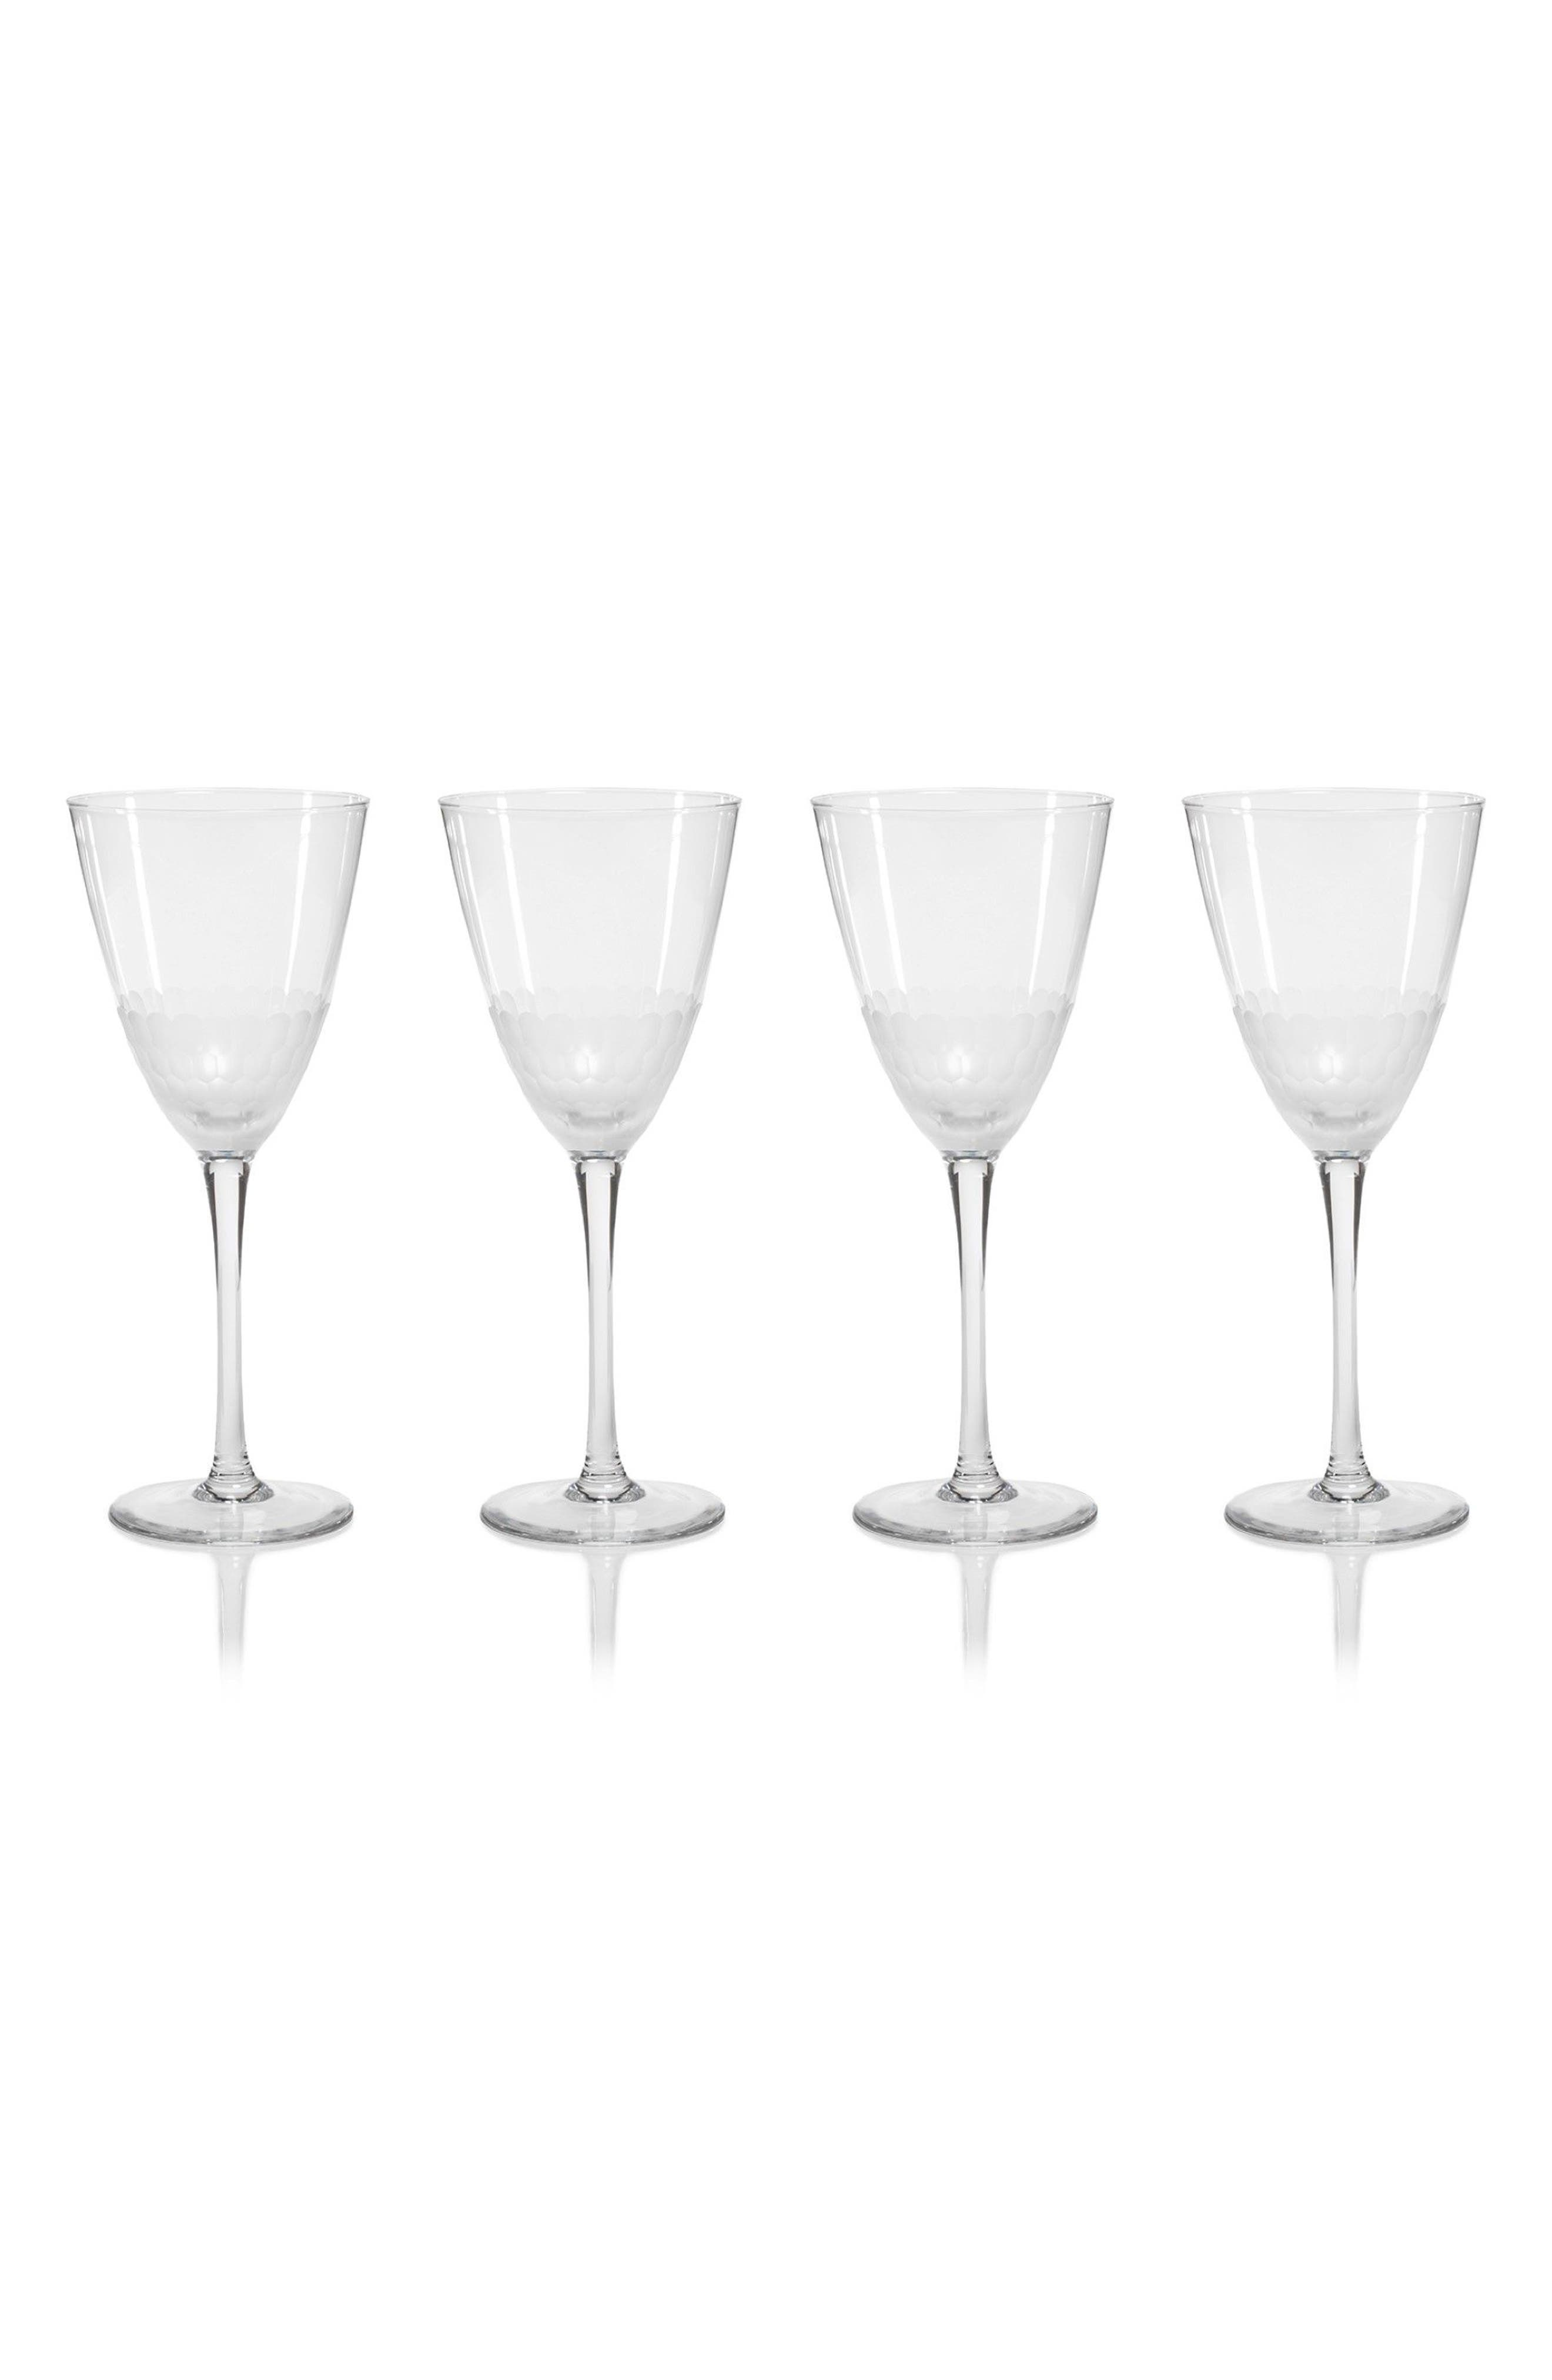 Alternate Image 1 Selected - Zodax Vitorrio Set of 4 Frosted Wine Glasses